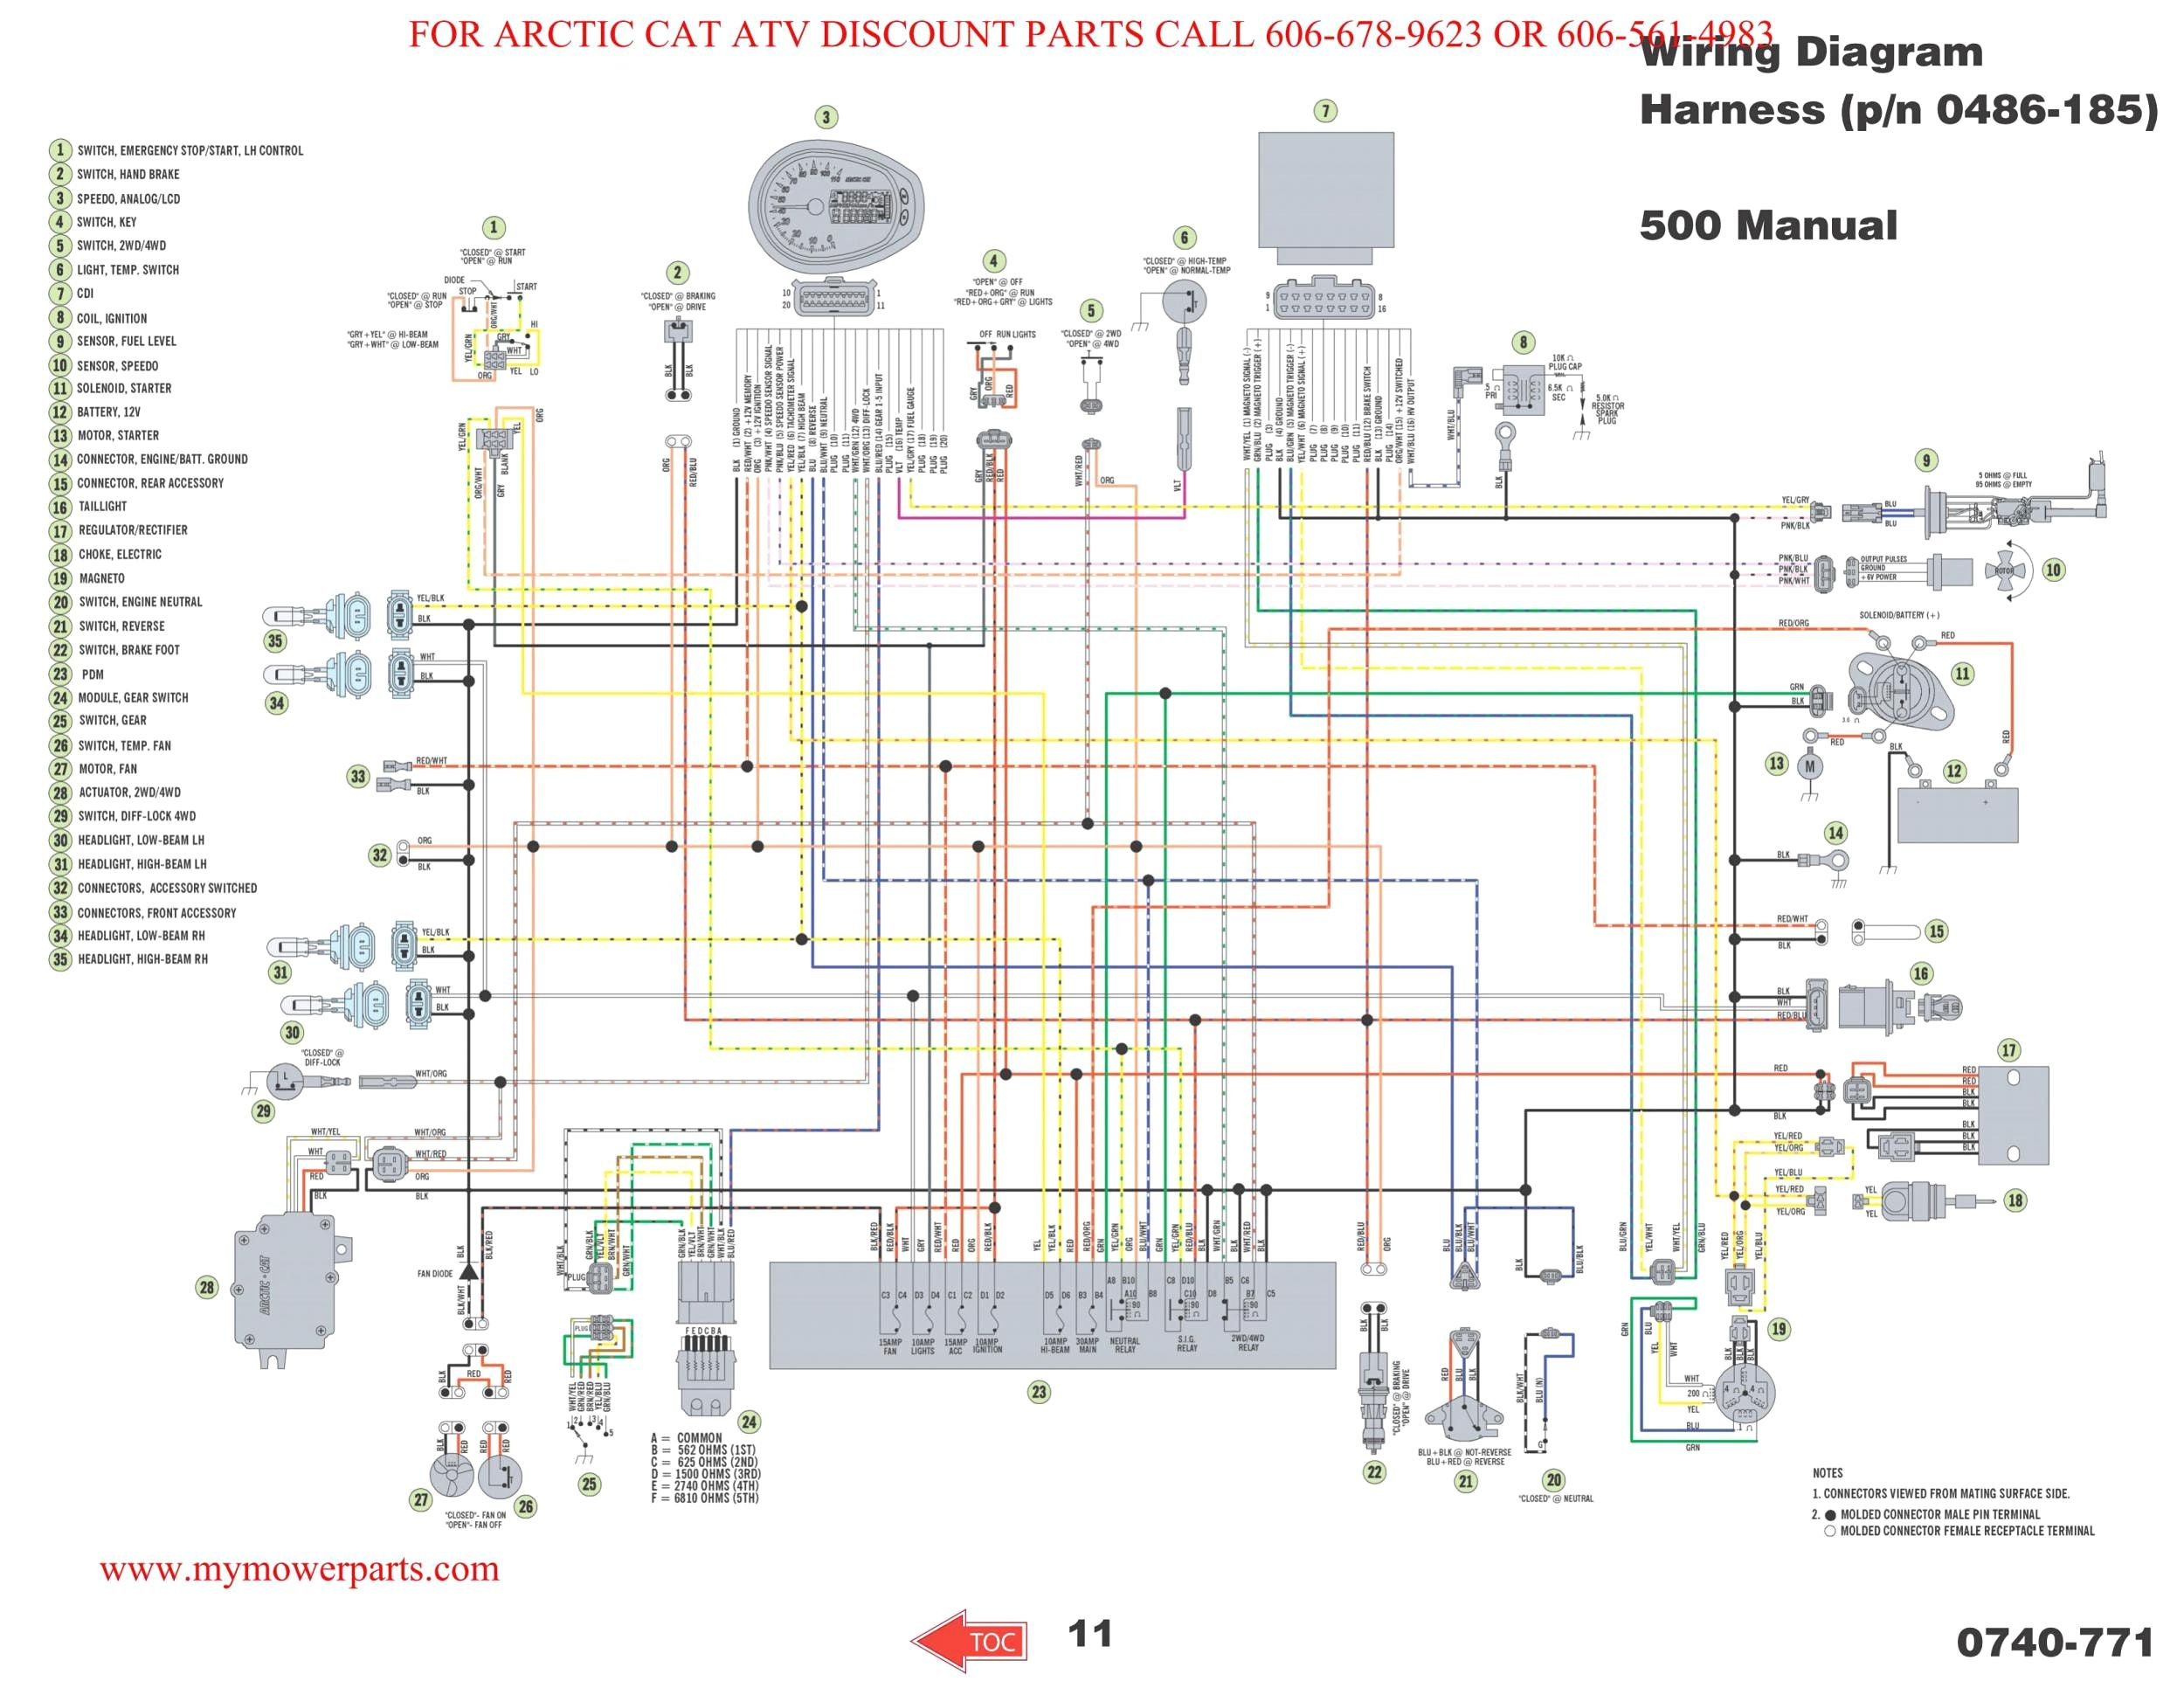 Polaris Ranger 500 Wiring Diagram in 2020 | Polaris ranger, Diagram, Diagram  chartPinterest